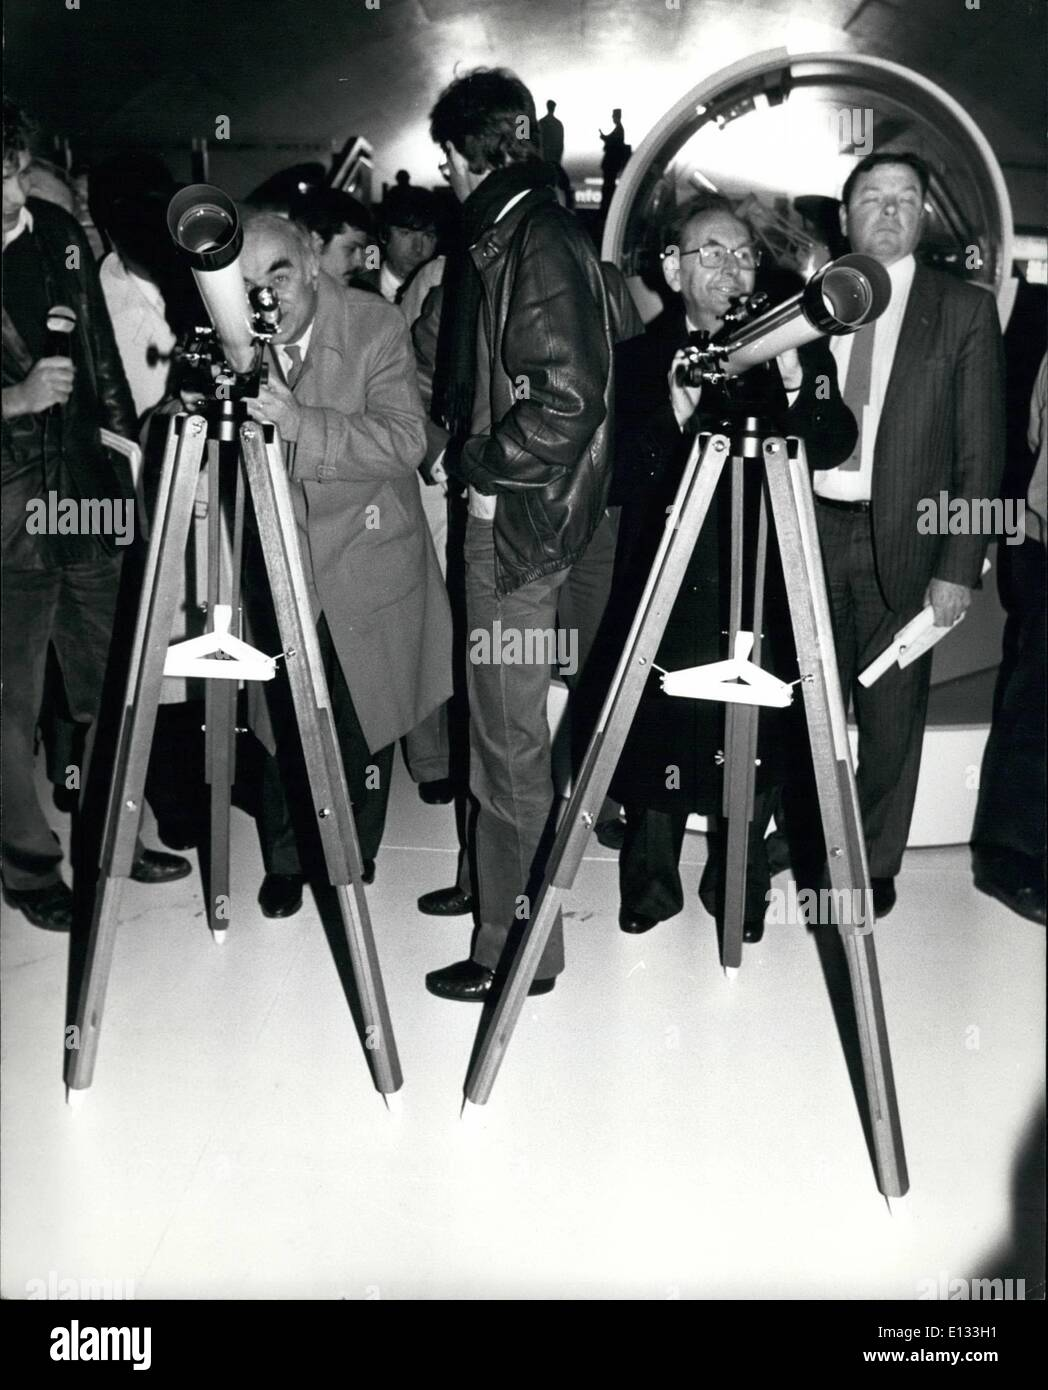 Feb. 26, 2012 - NPM/ Le Metro a Ciel Ouvert is an exhibition run by the RATP (Parisian Transports): The passengers will discover the universe through astronomy and space which are a topical issues. Here Hubert Curien Minister of Research and Technology and Claude Quin (right) President of the RATP looking in telescope, at Auber Tube station. - Stock Image